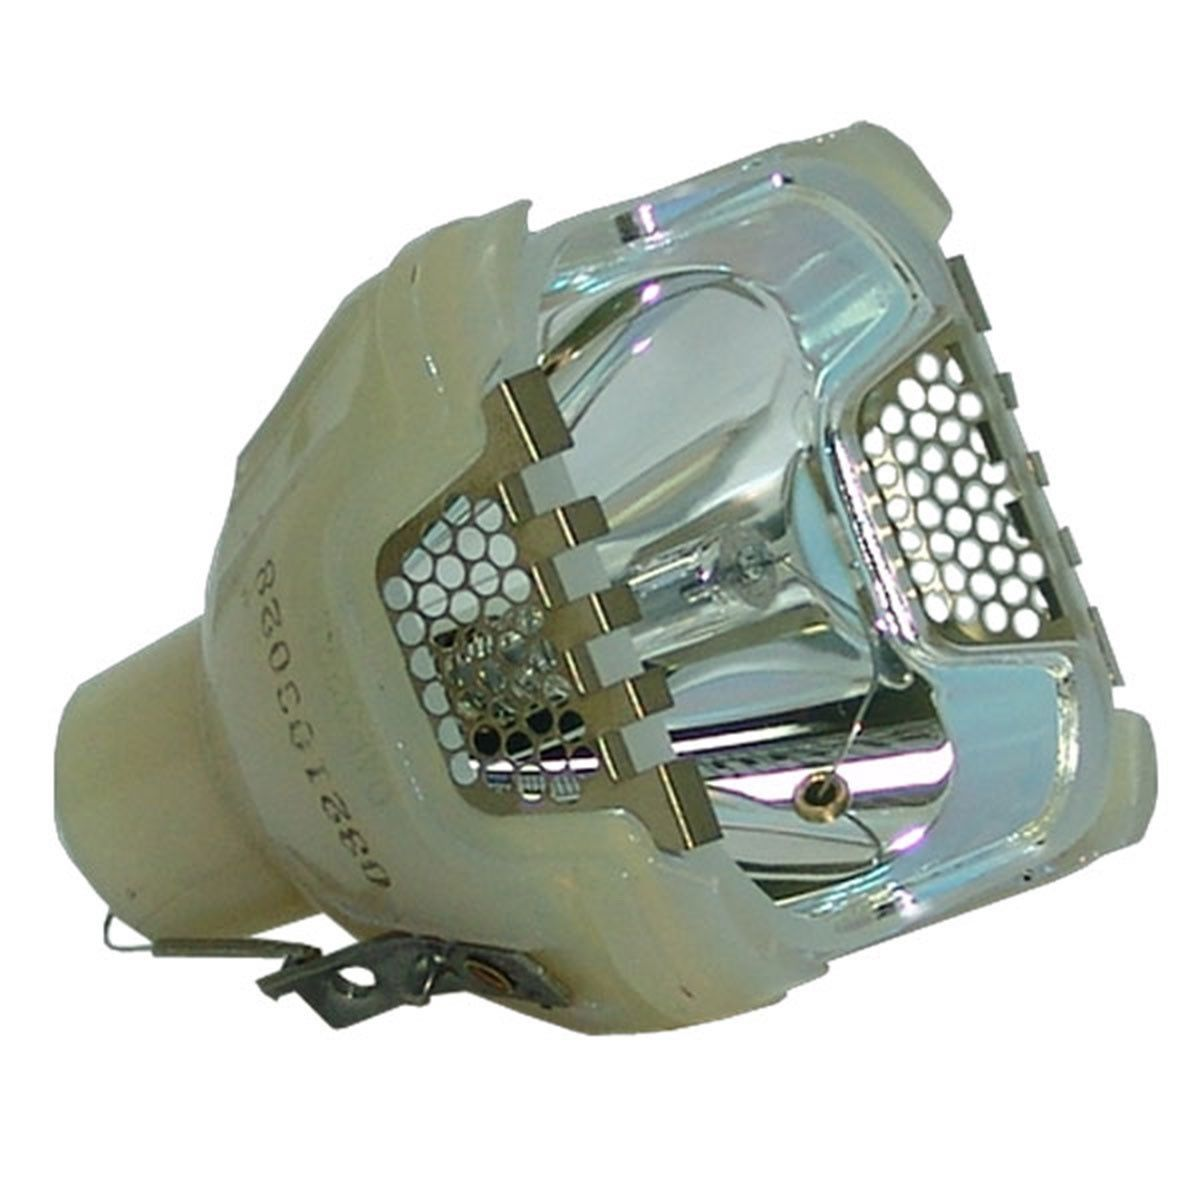 Compatible Bare Bulb 03-000754-02P for CHRISTIE LX25a Projector Lamp Bulb without housing compatible bare bulb lv lp06 4642a001 for canon lv 7525 lv 7525e lv 7535 lv 7535u projector lamp bulb without housing